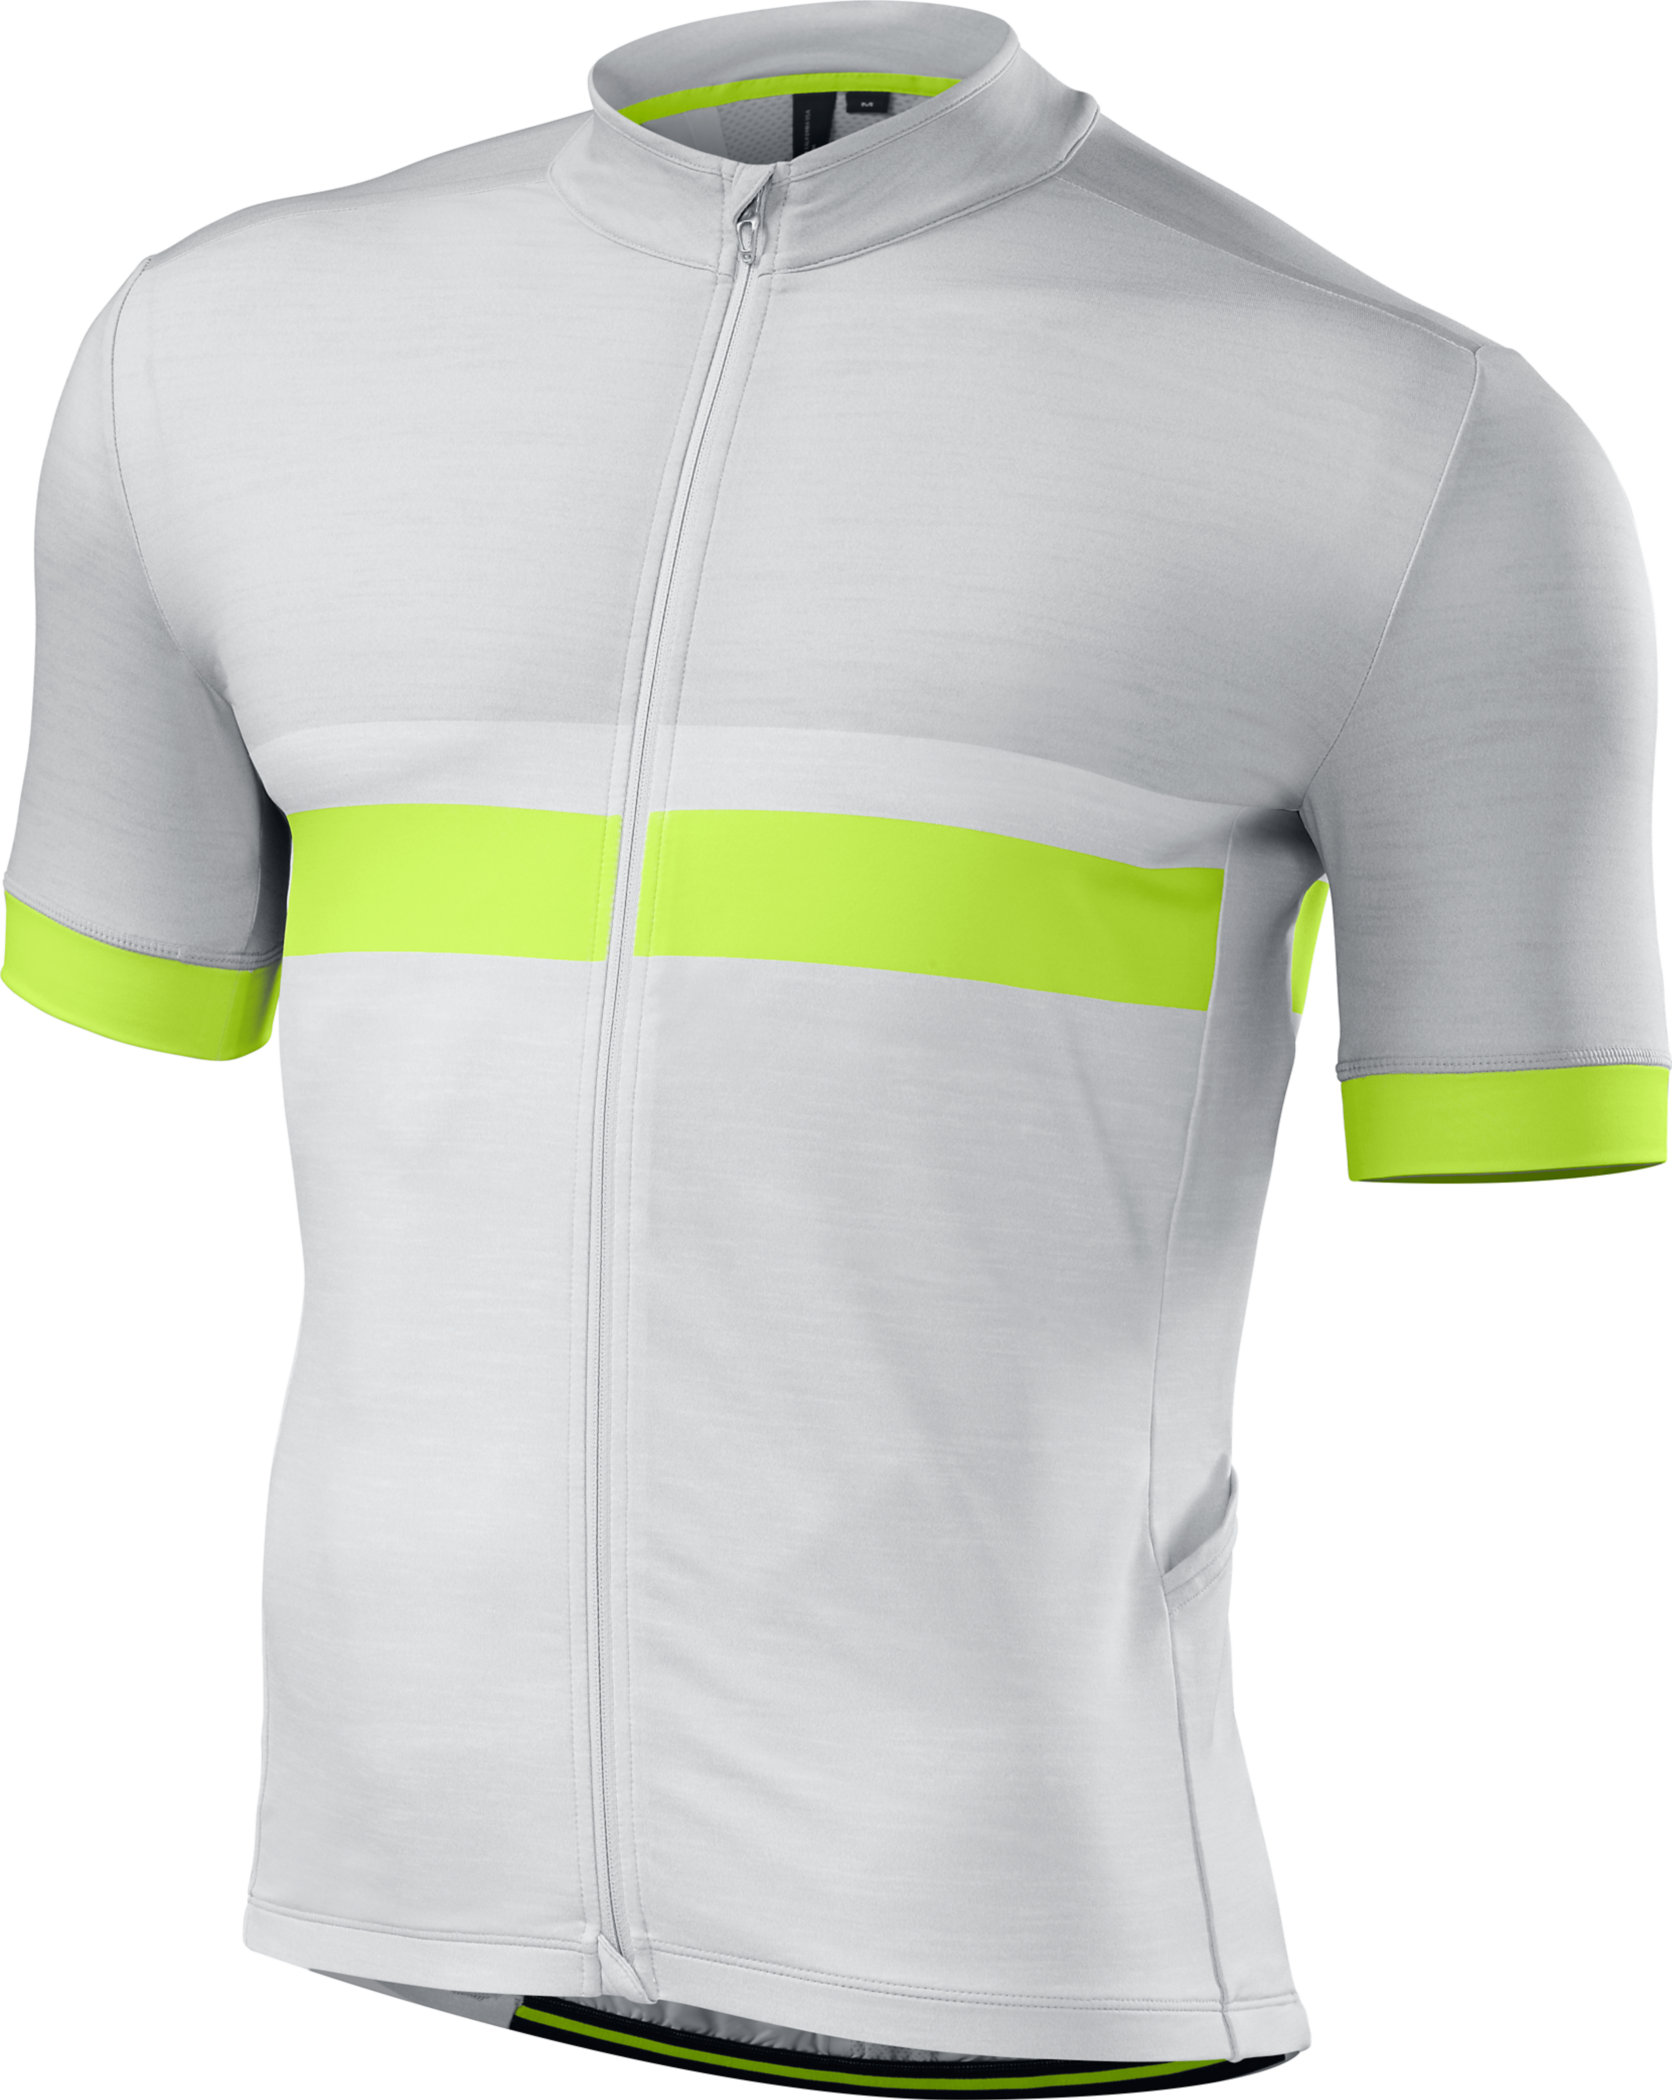 Specialized RBX Pro Jersey Light Grey/Neon Yellow Large - Alpha Bikes